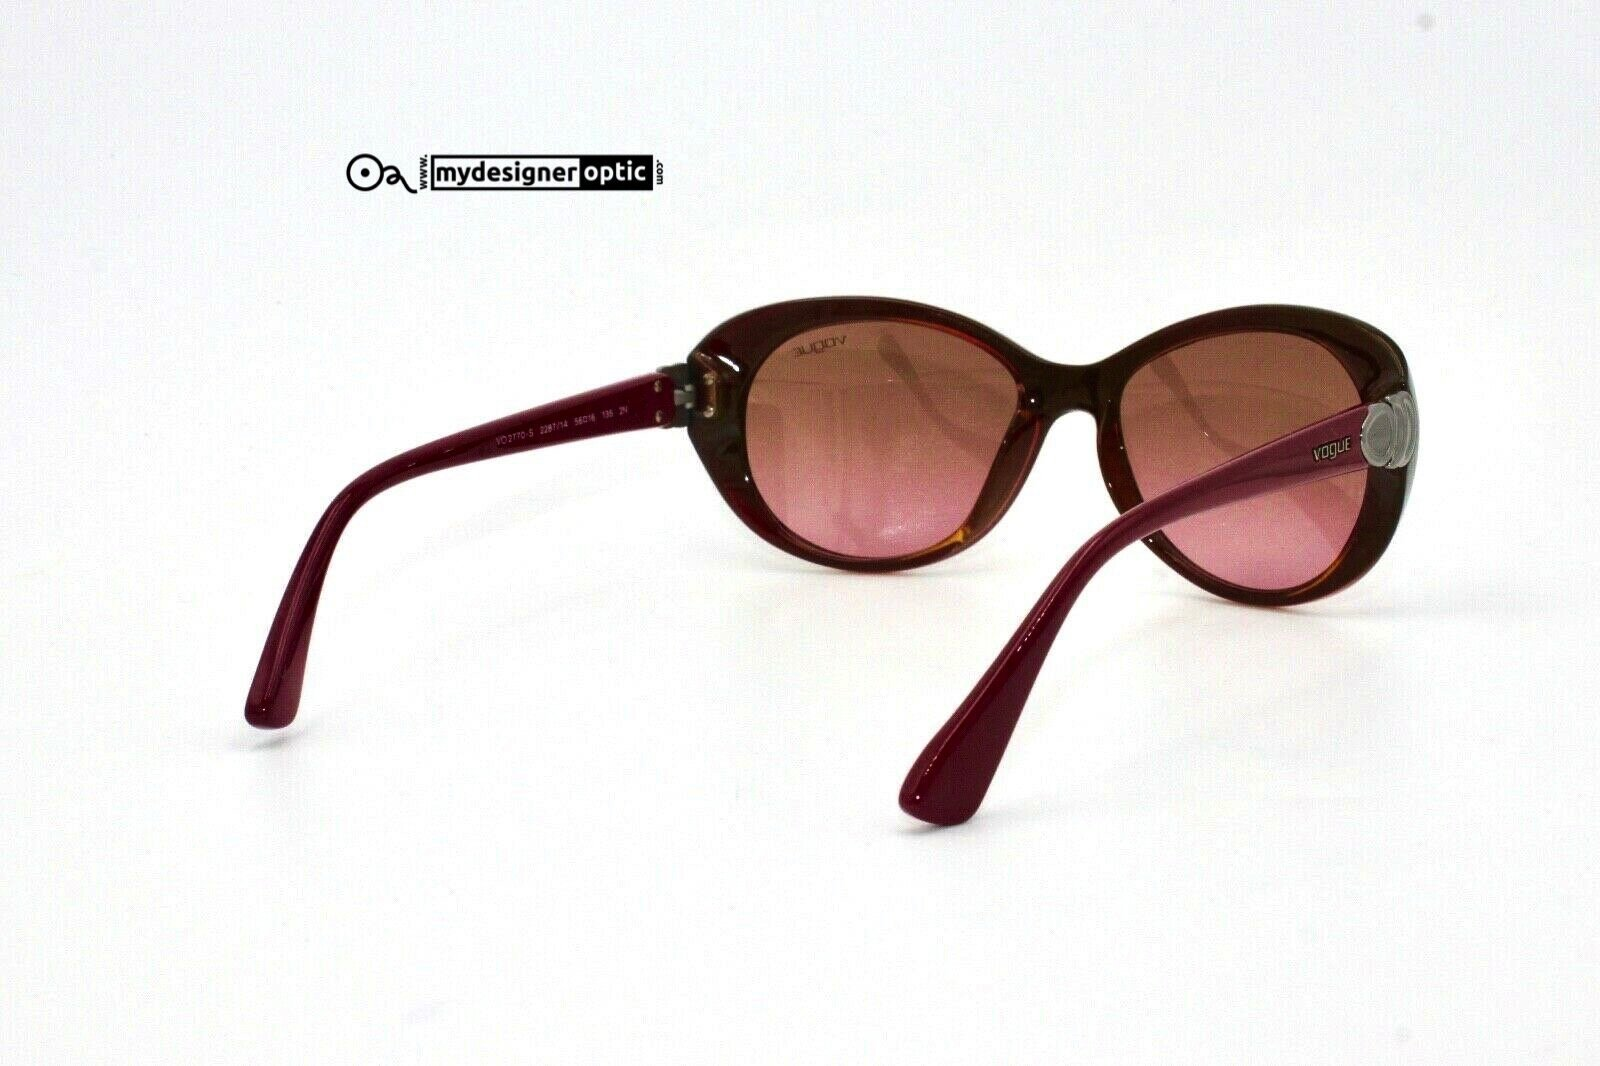 Vogue Eyewear VO2770-S 2287/14 56-16 135 2N Made in Italy - Mydesigneroptic